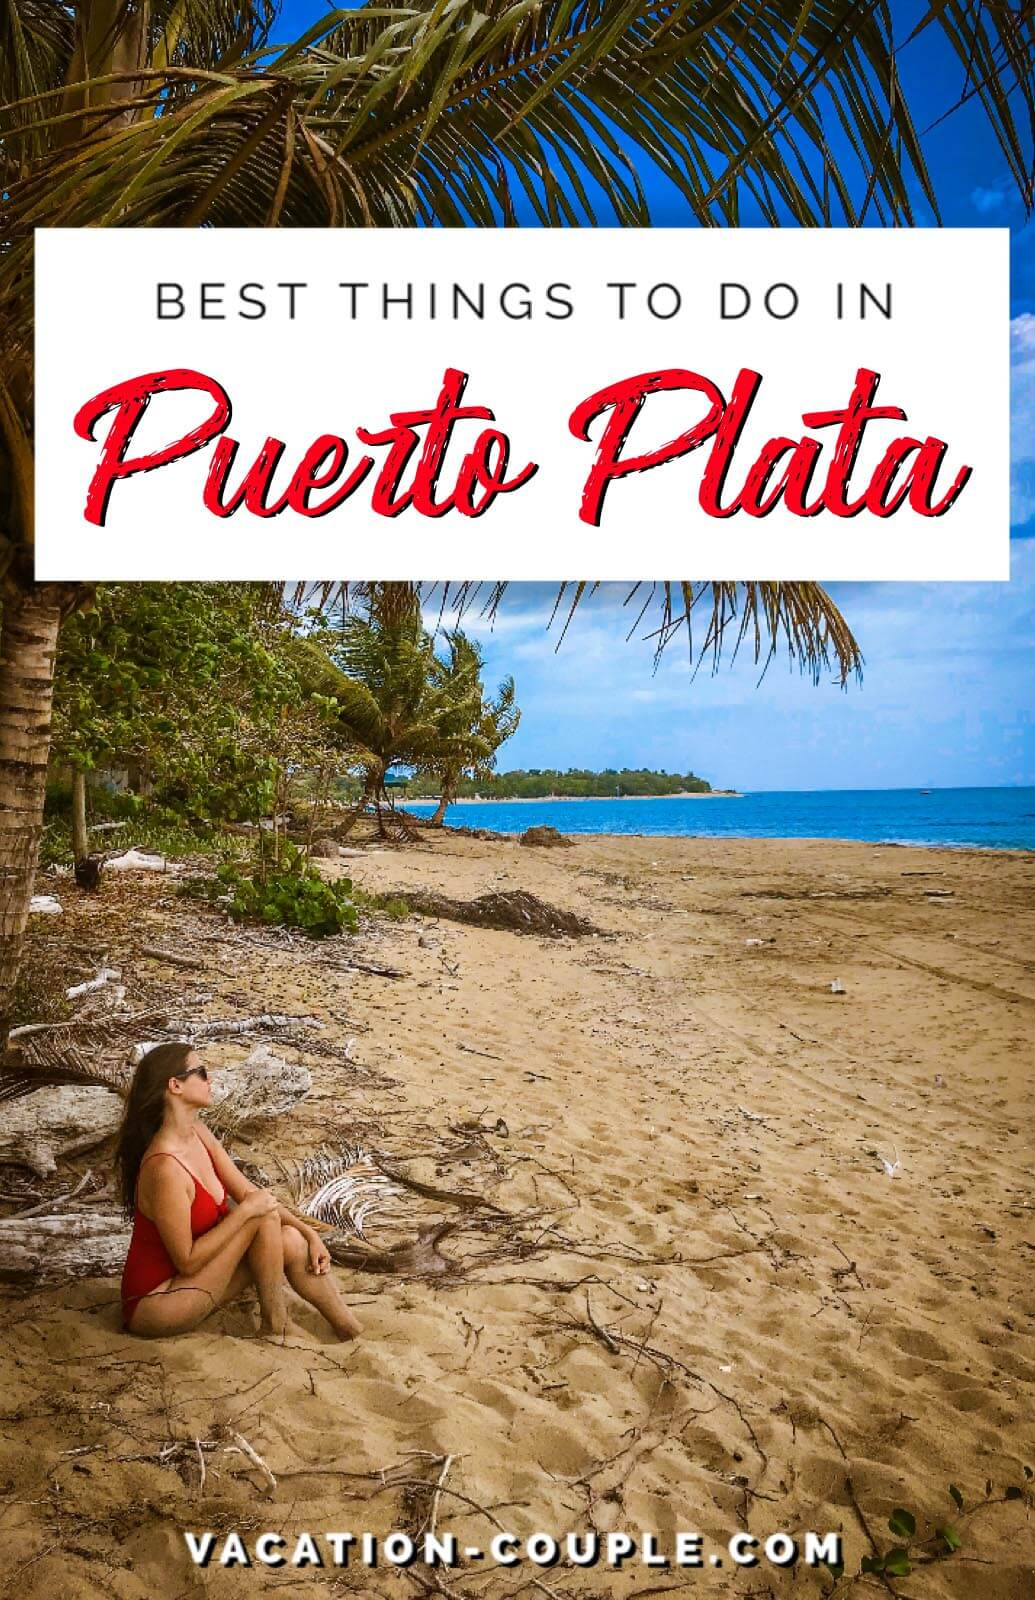 Best Things to Do in Puerto Plata